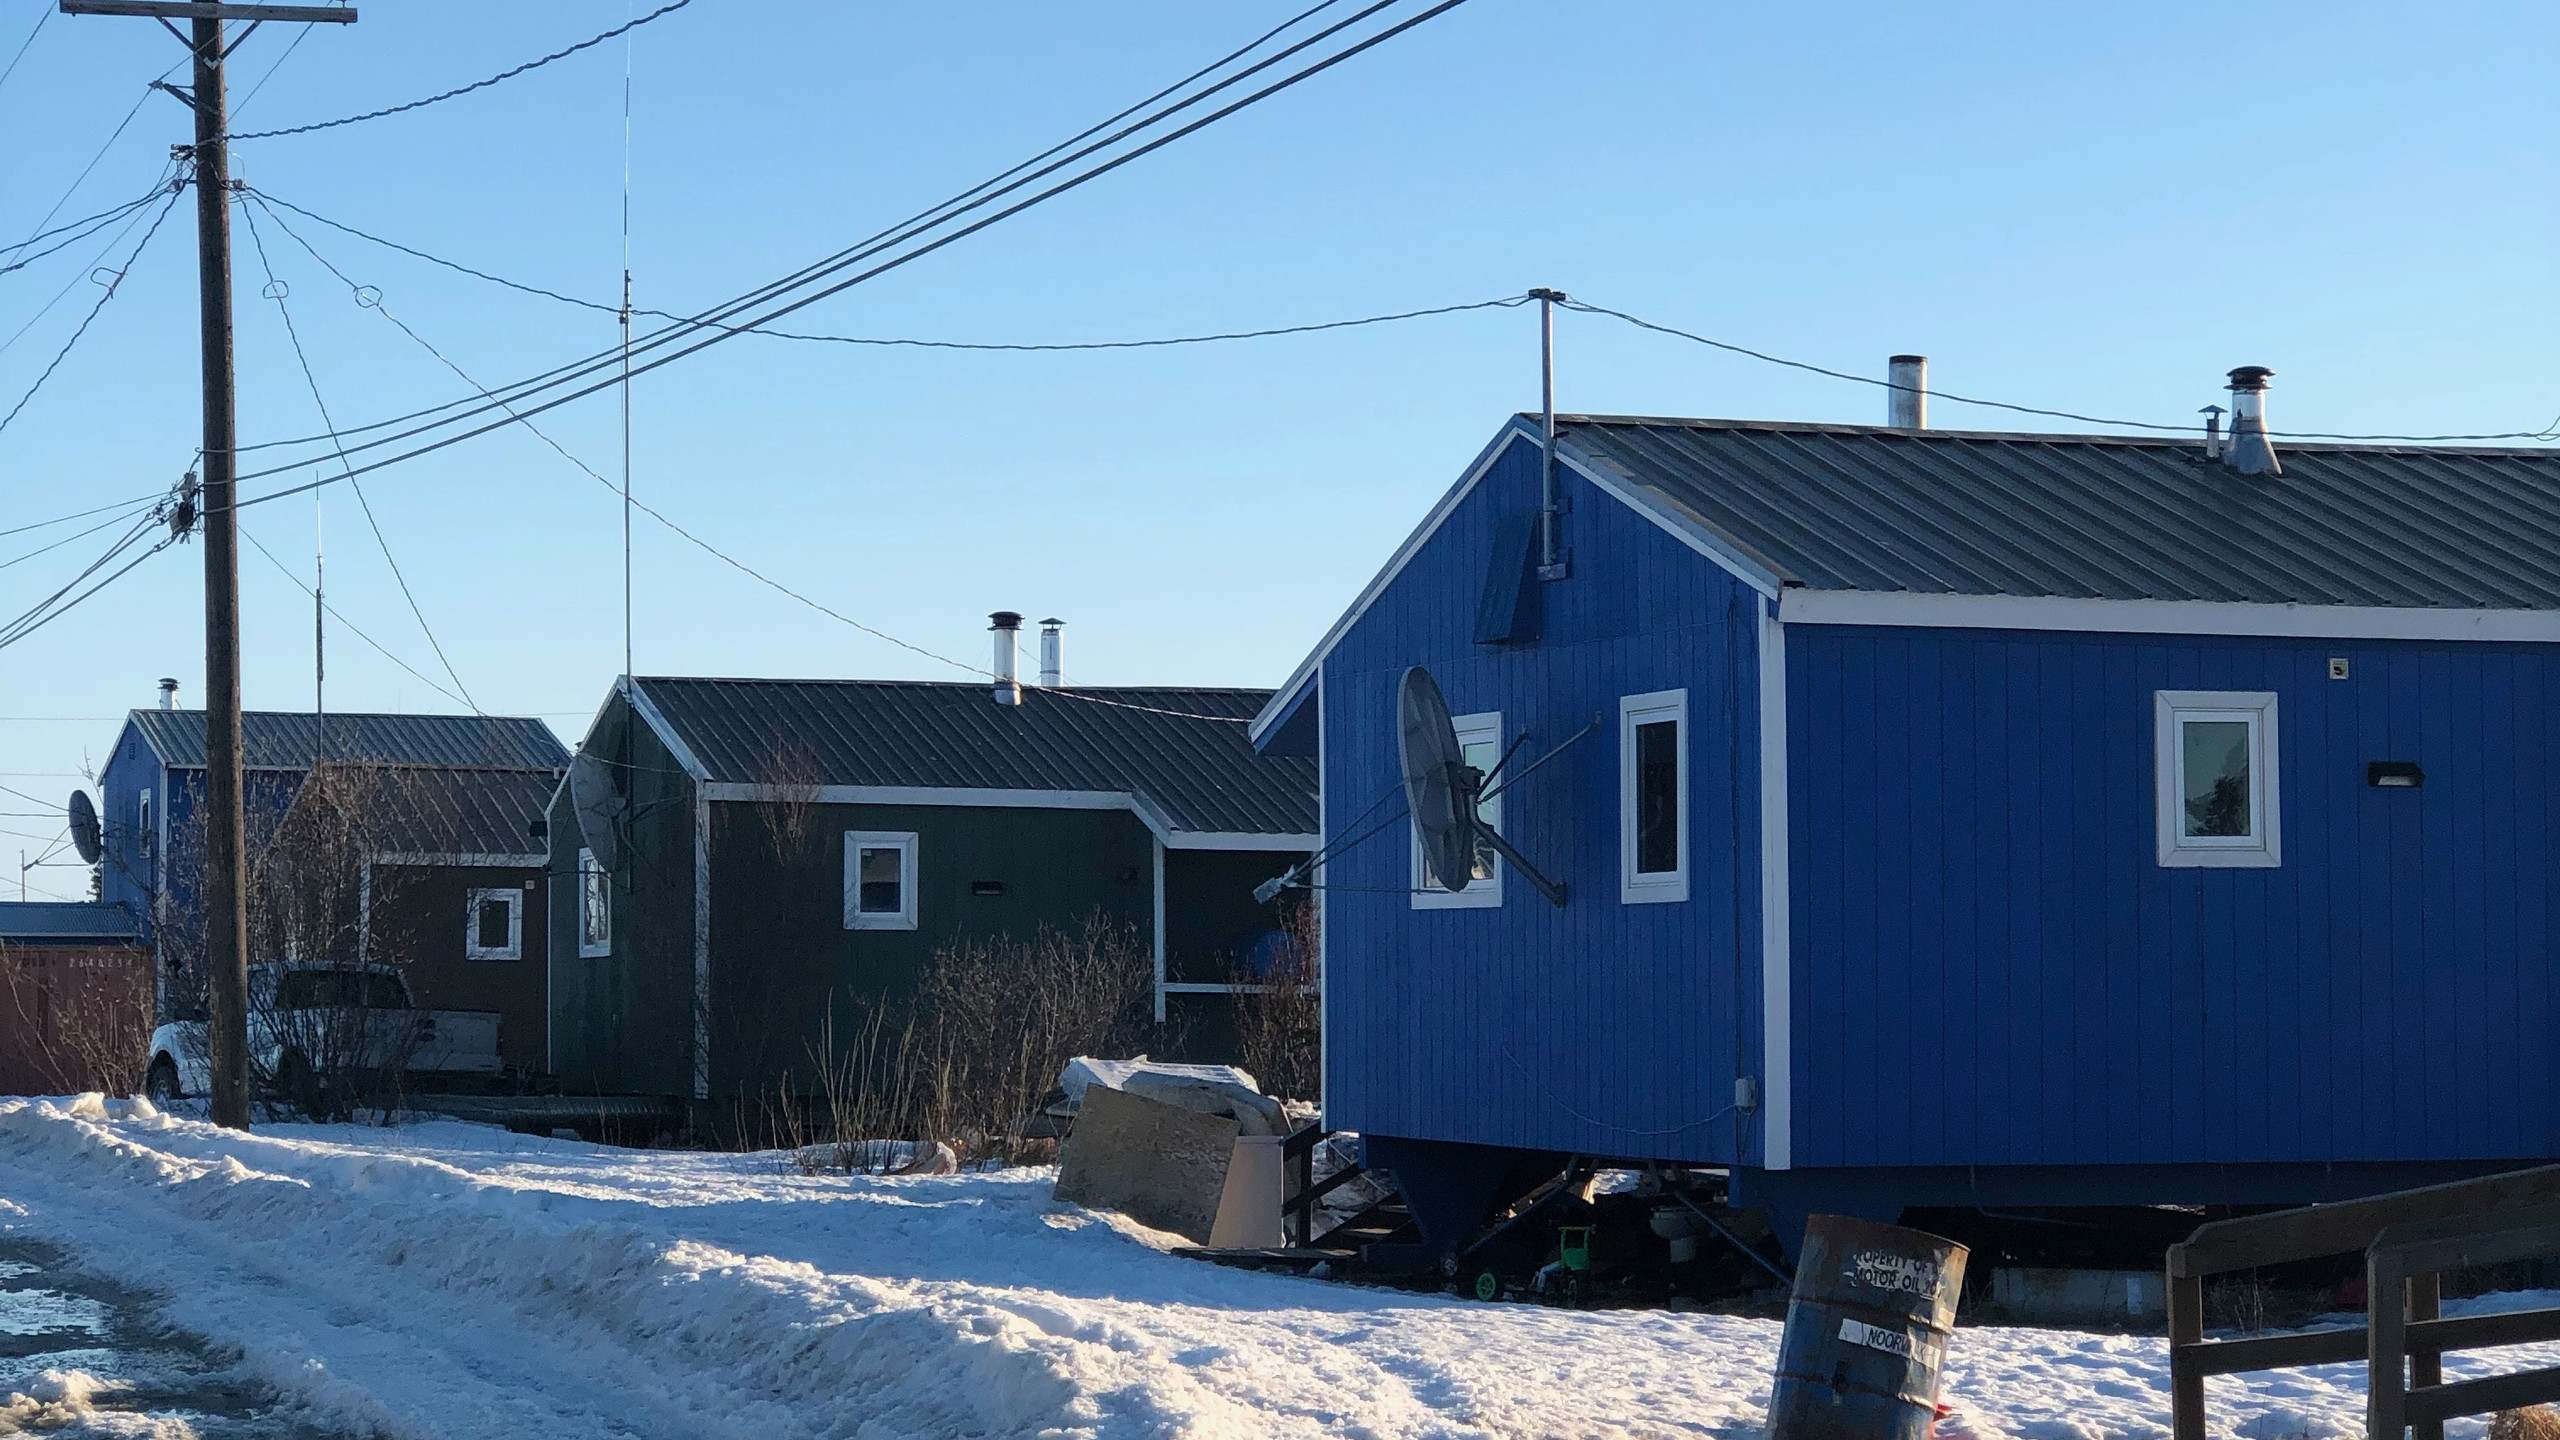 The houses were up on stilts because of the permafrost